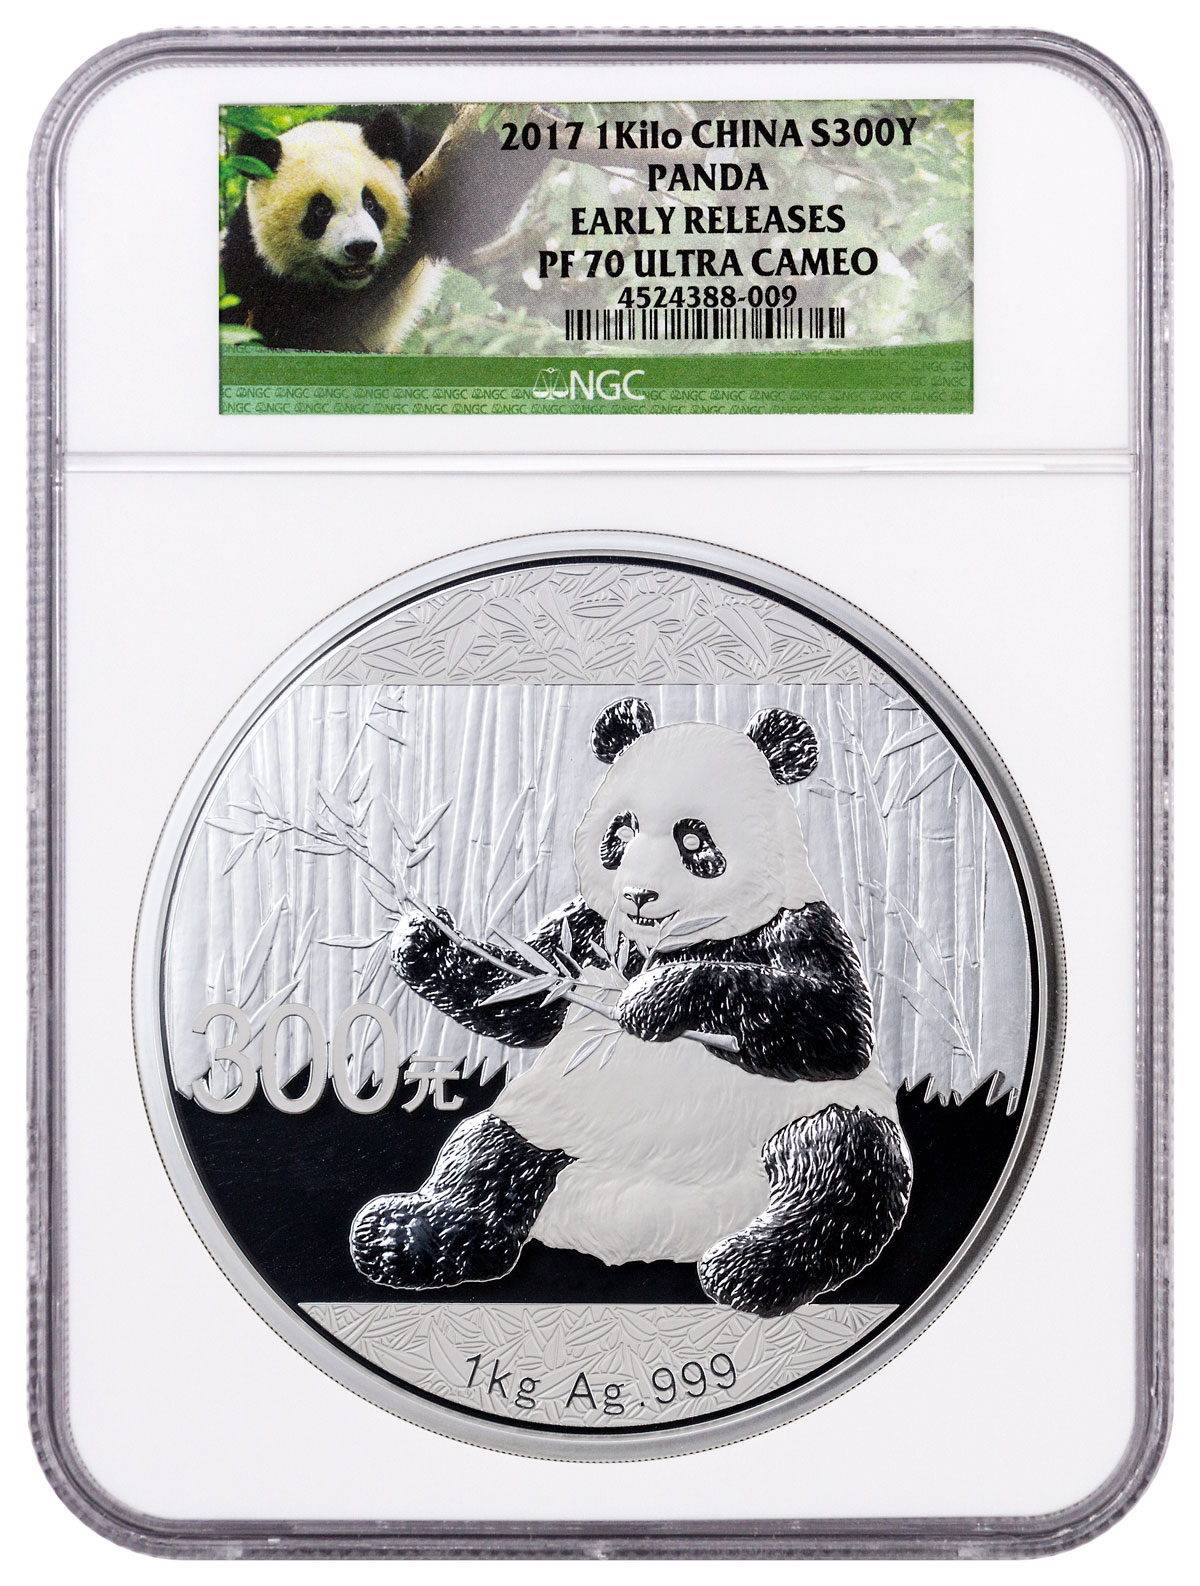 2017 China 1 kilo Silver Panda Proof ¥300 Coin NGC PF70 UC ER (Exclusive Panda Label)